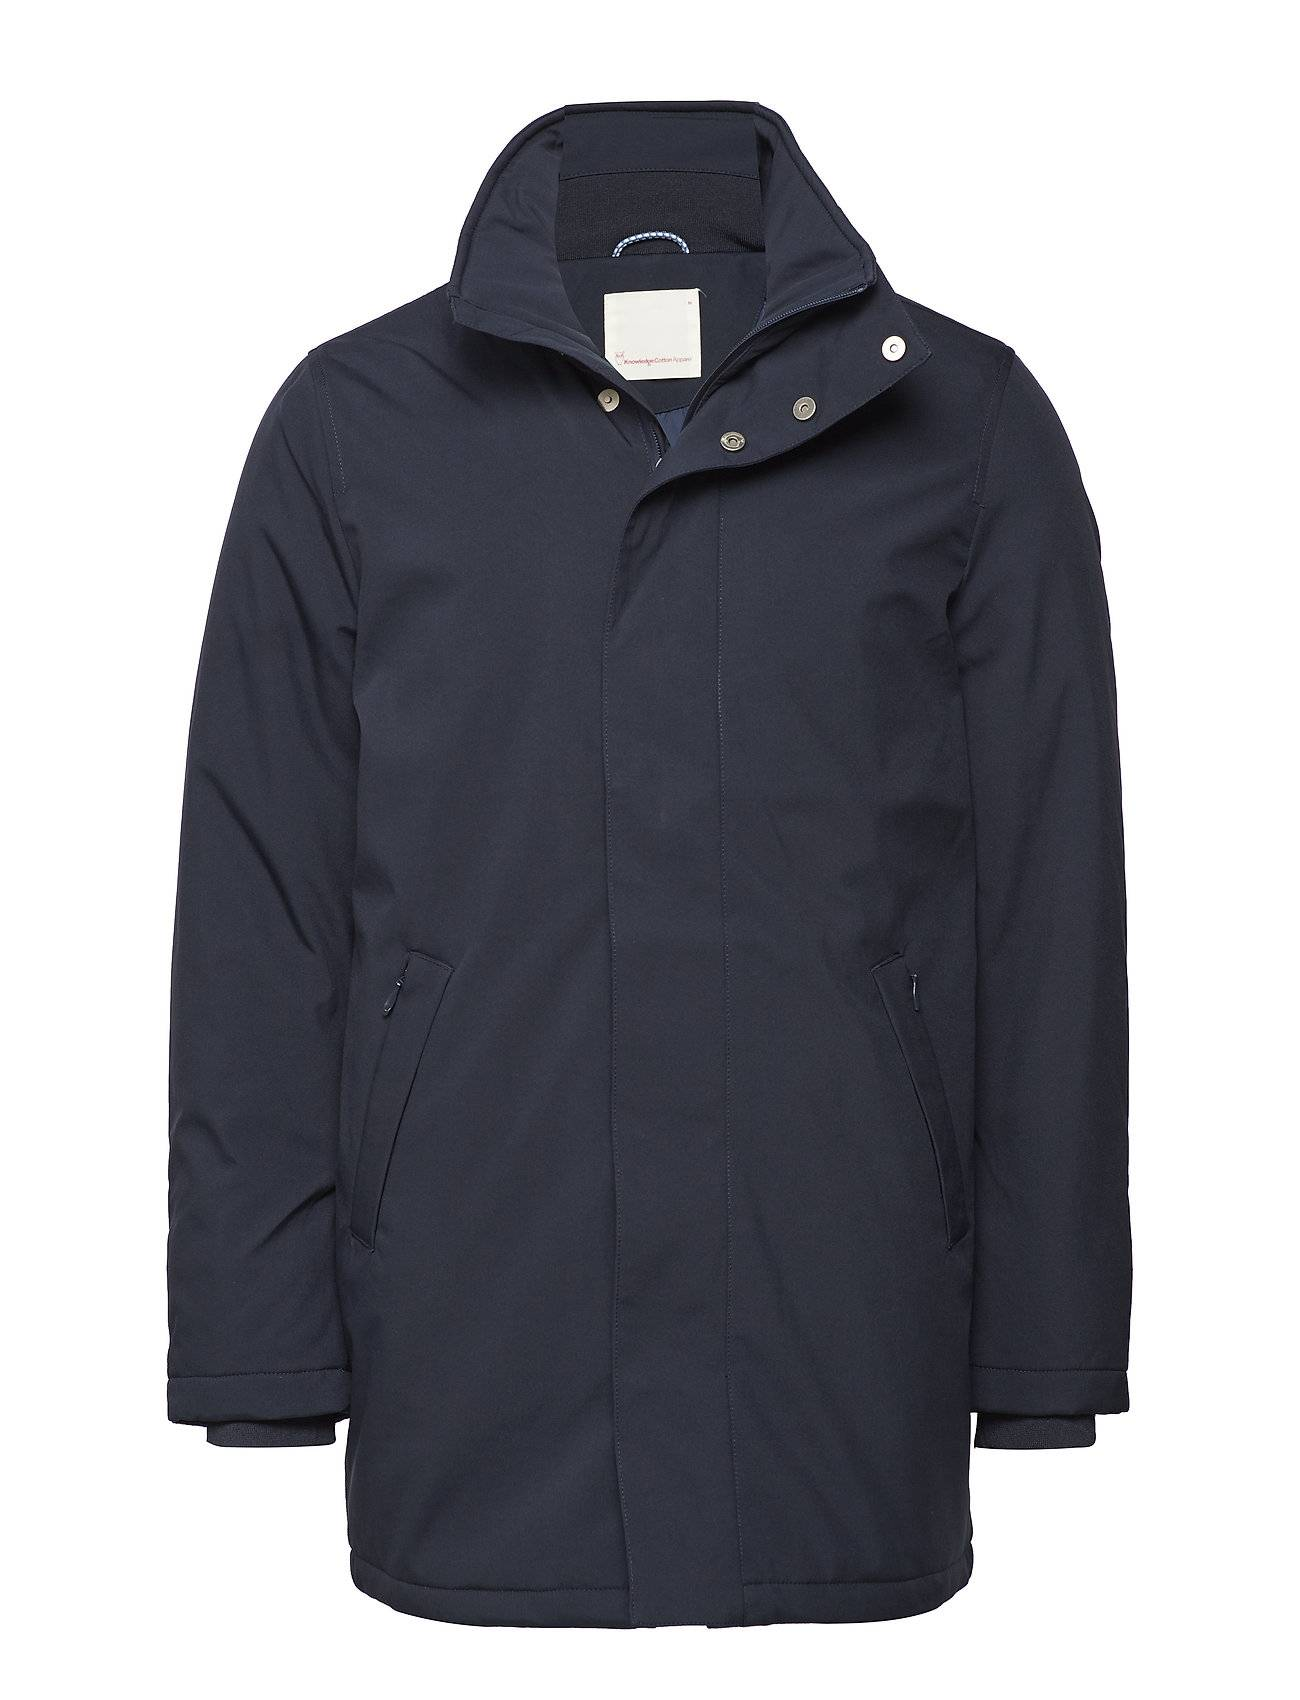 Knowledge Cotton Apparel Softshell Long Jacket - Grs